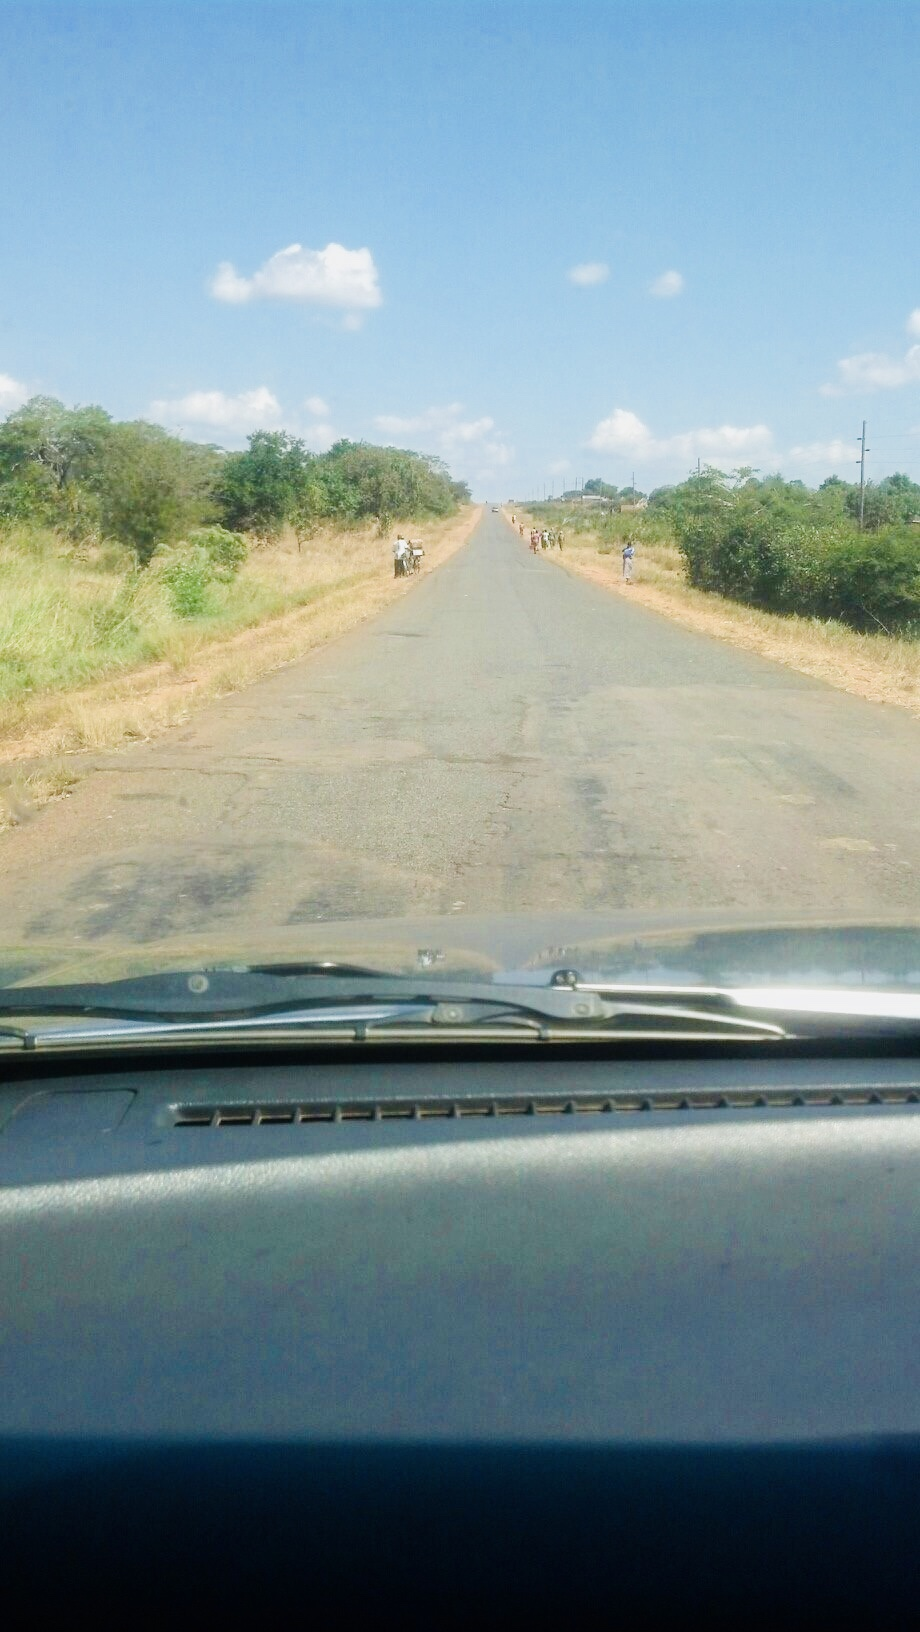 Roads throughout Zambia are like this - no car traffic, but lots of pedestrian traffic.